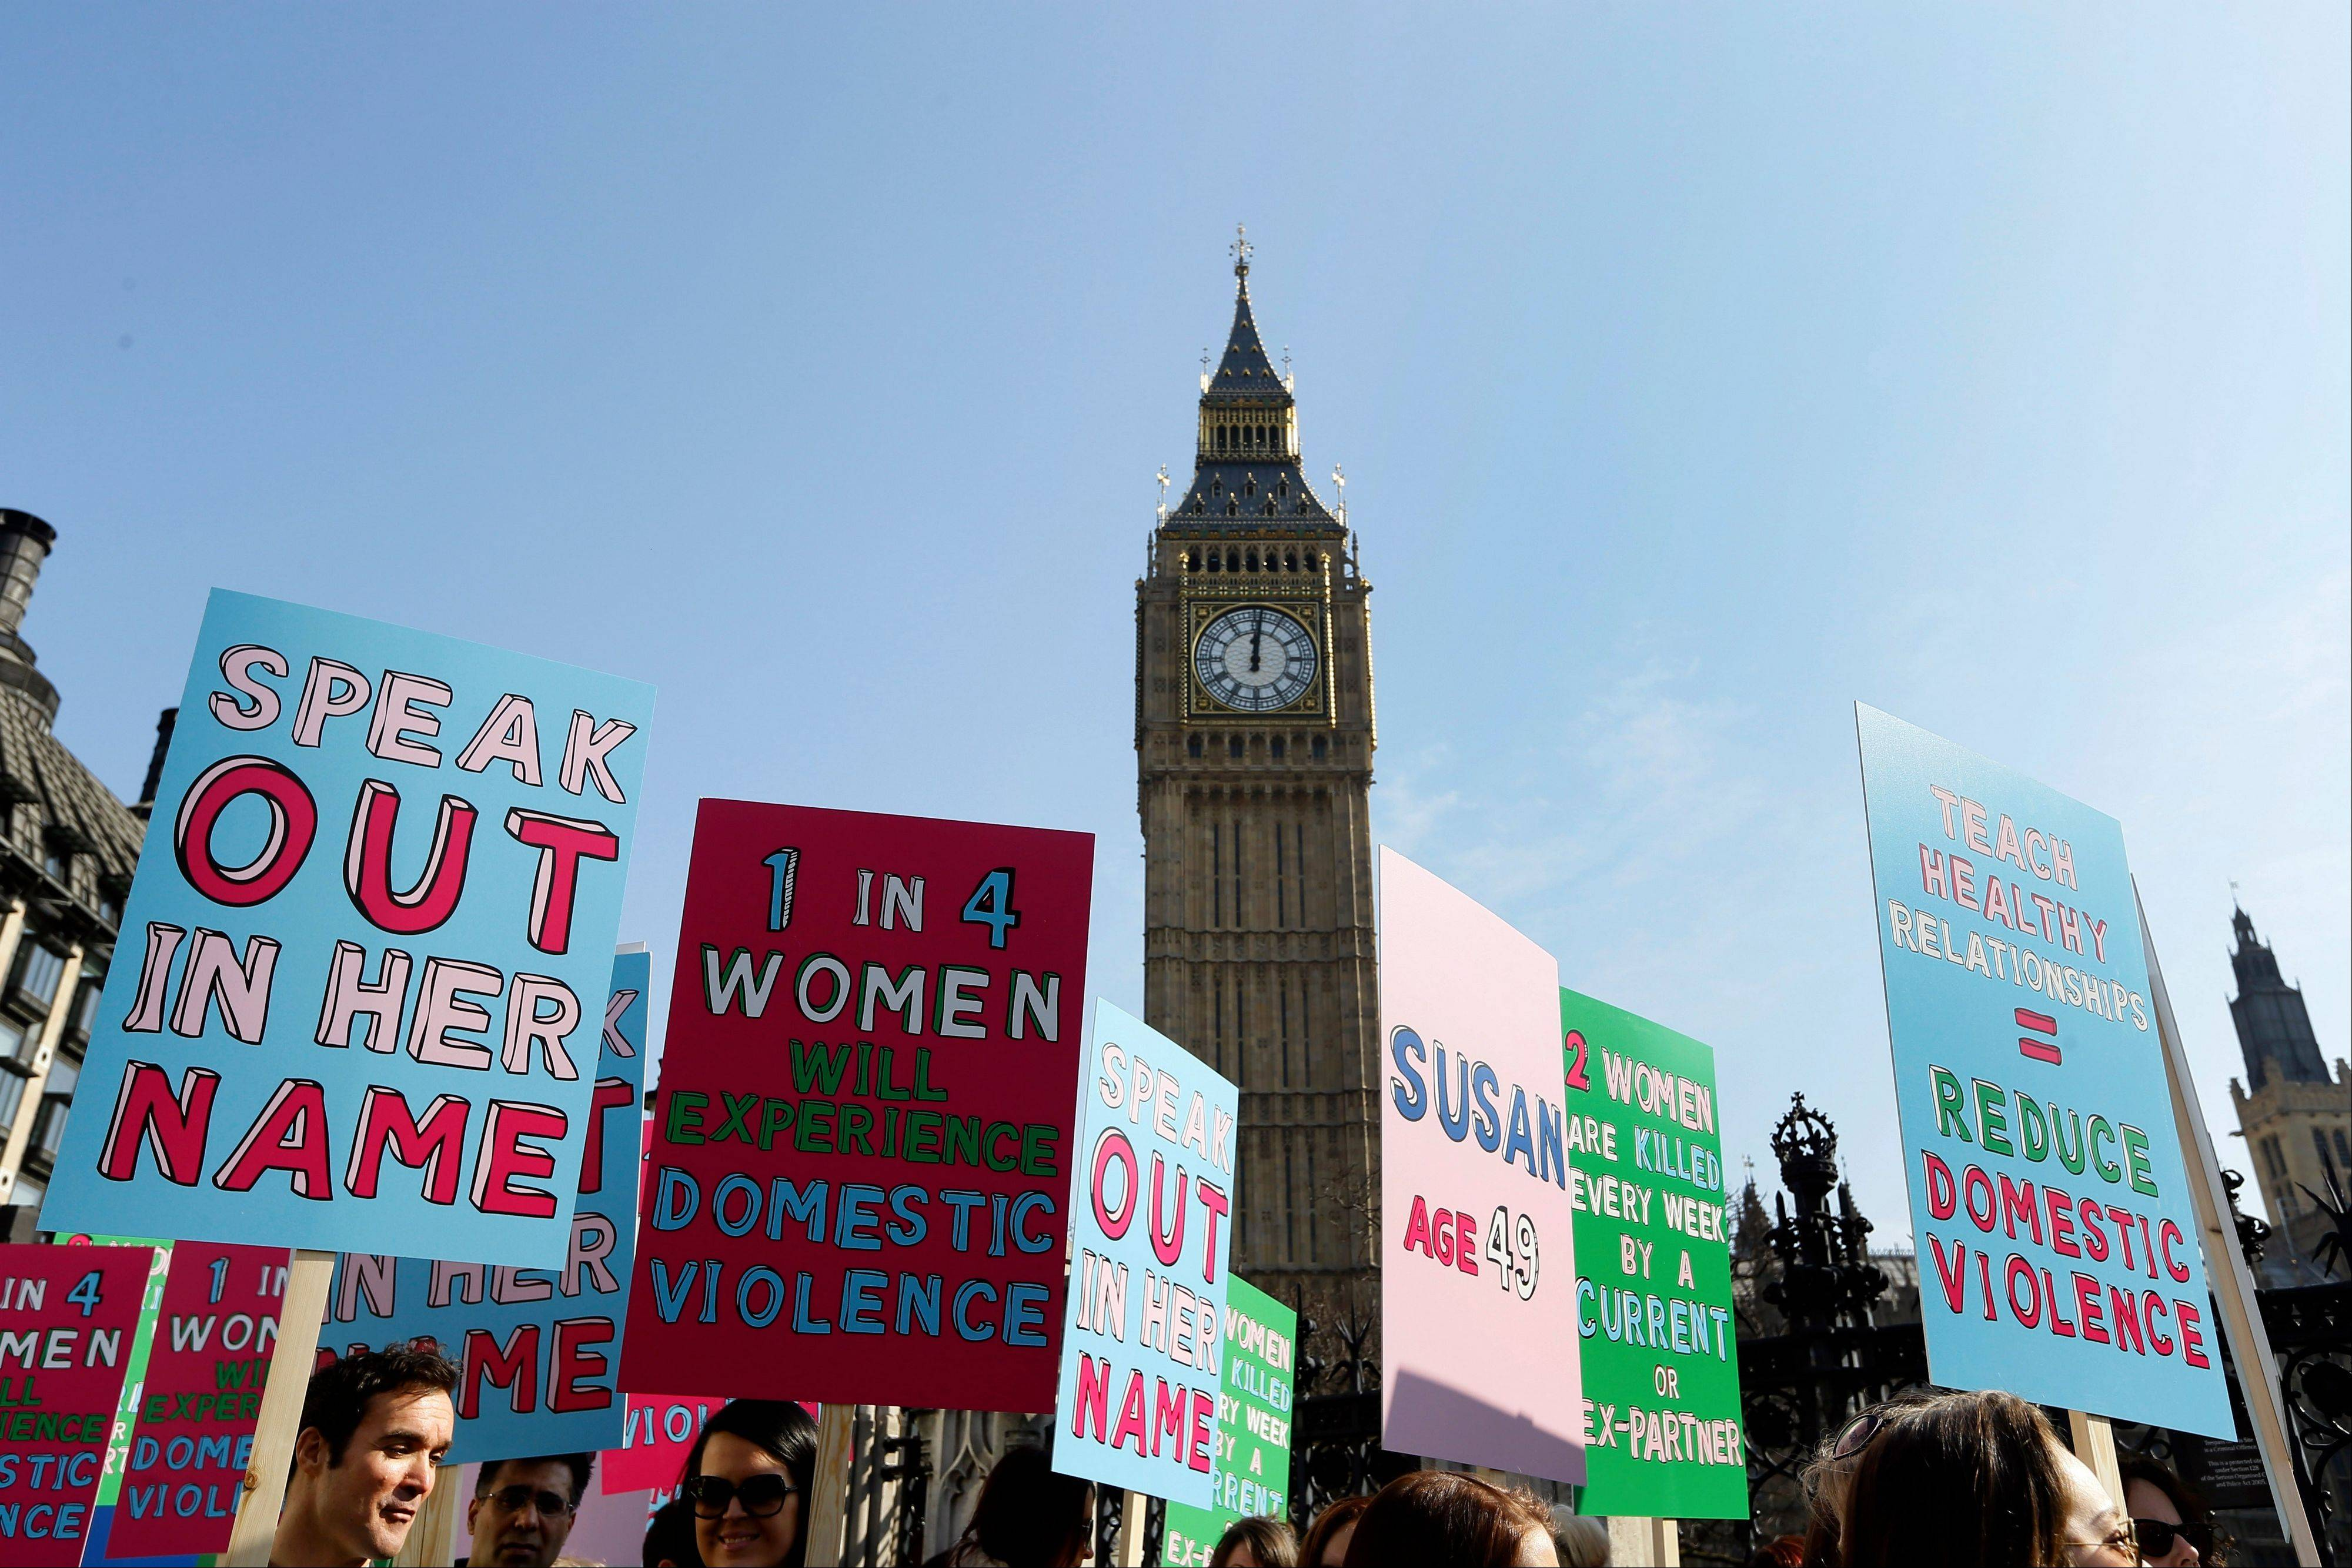 People hold banners during a demonstration against domestic violence near Big Ben in London, in the lead up to International Women's Day. About a third of women worldwide have been physically or sexually assaulted by a former or current partner, according to the first major review of violence against women.